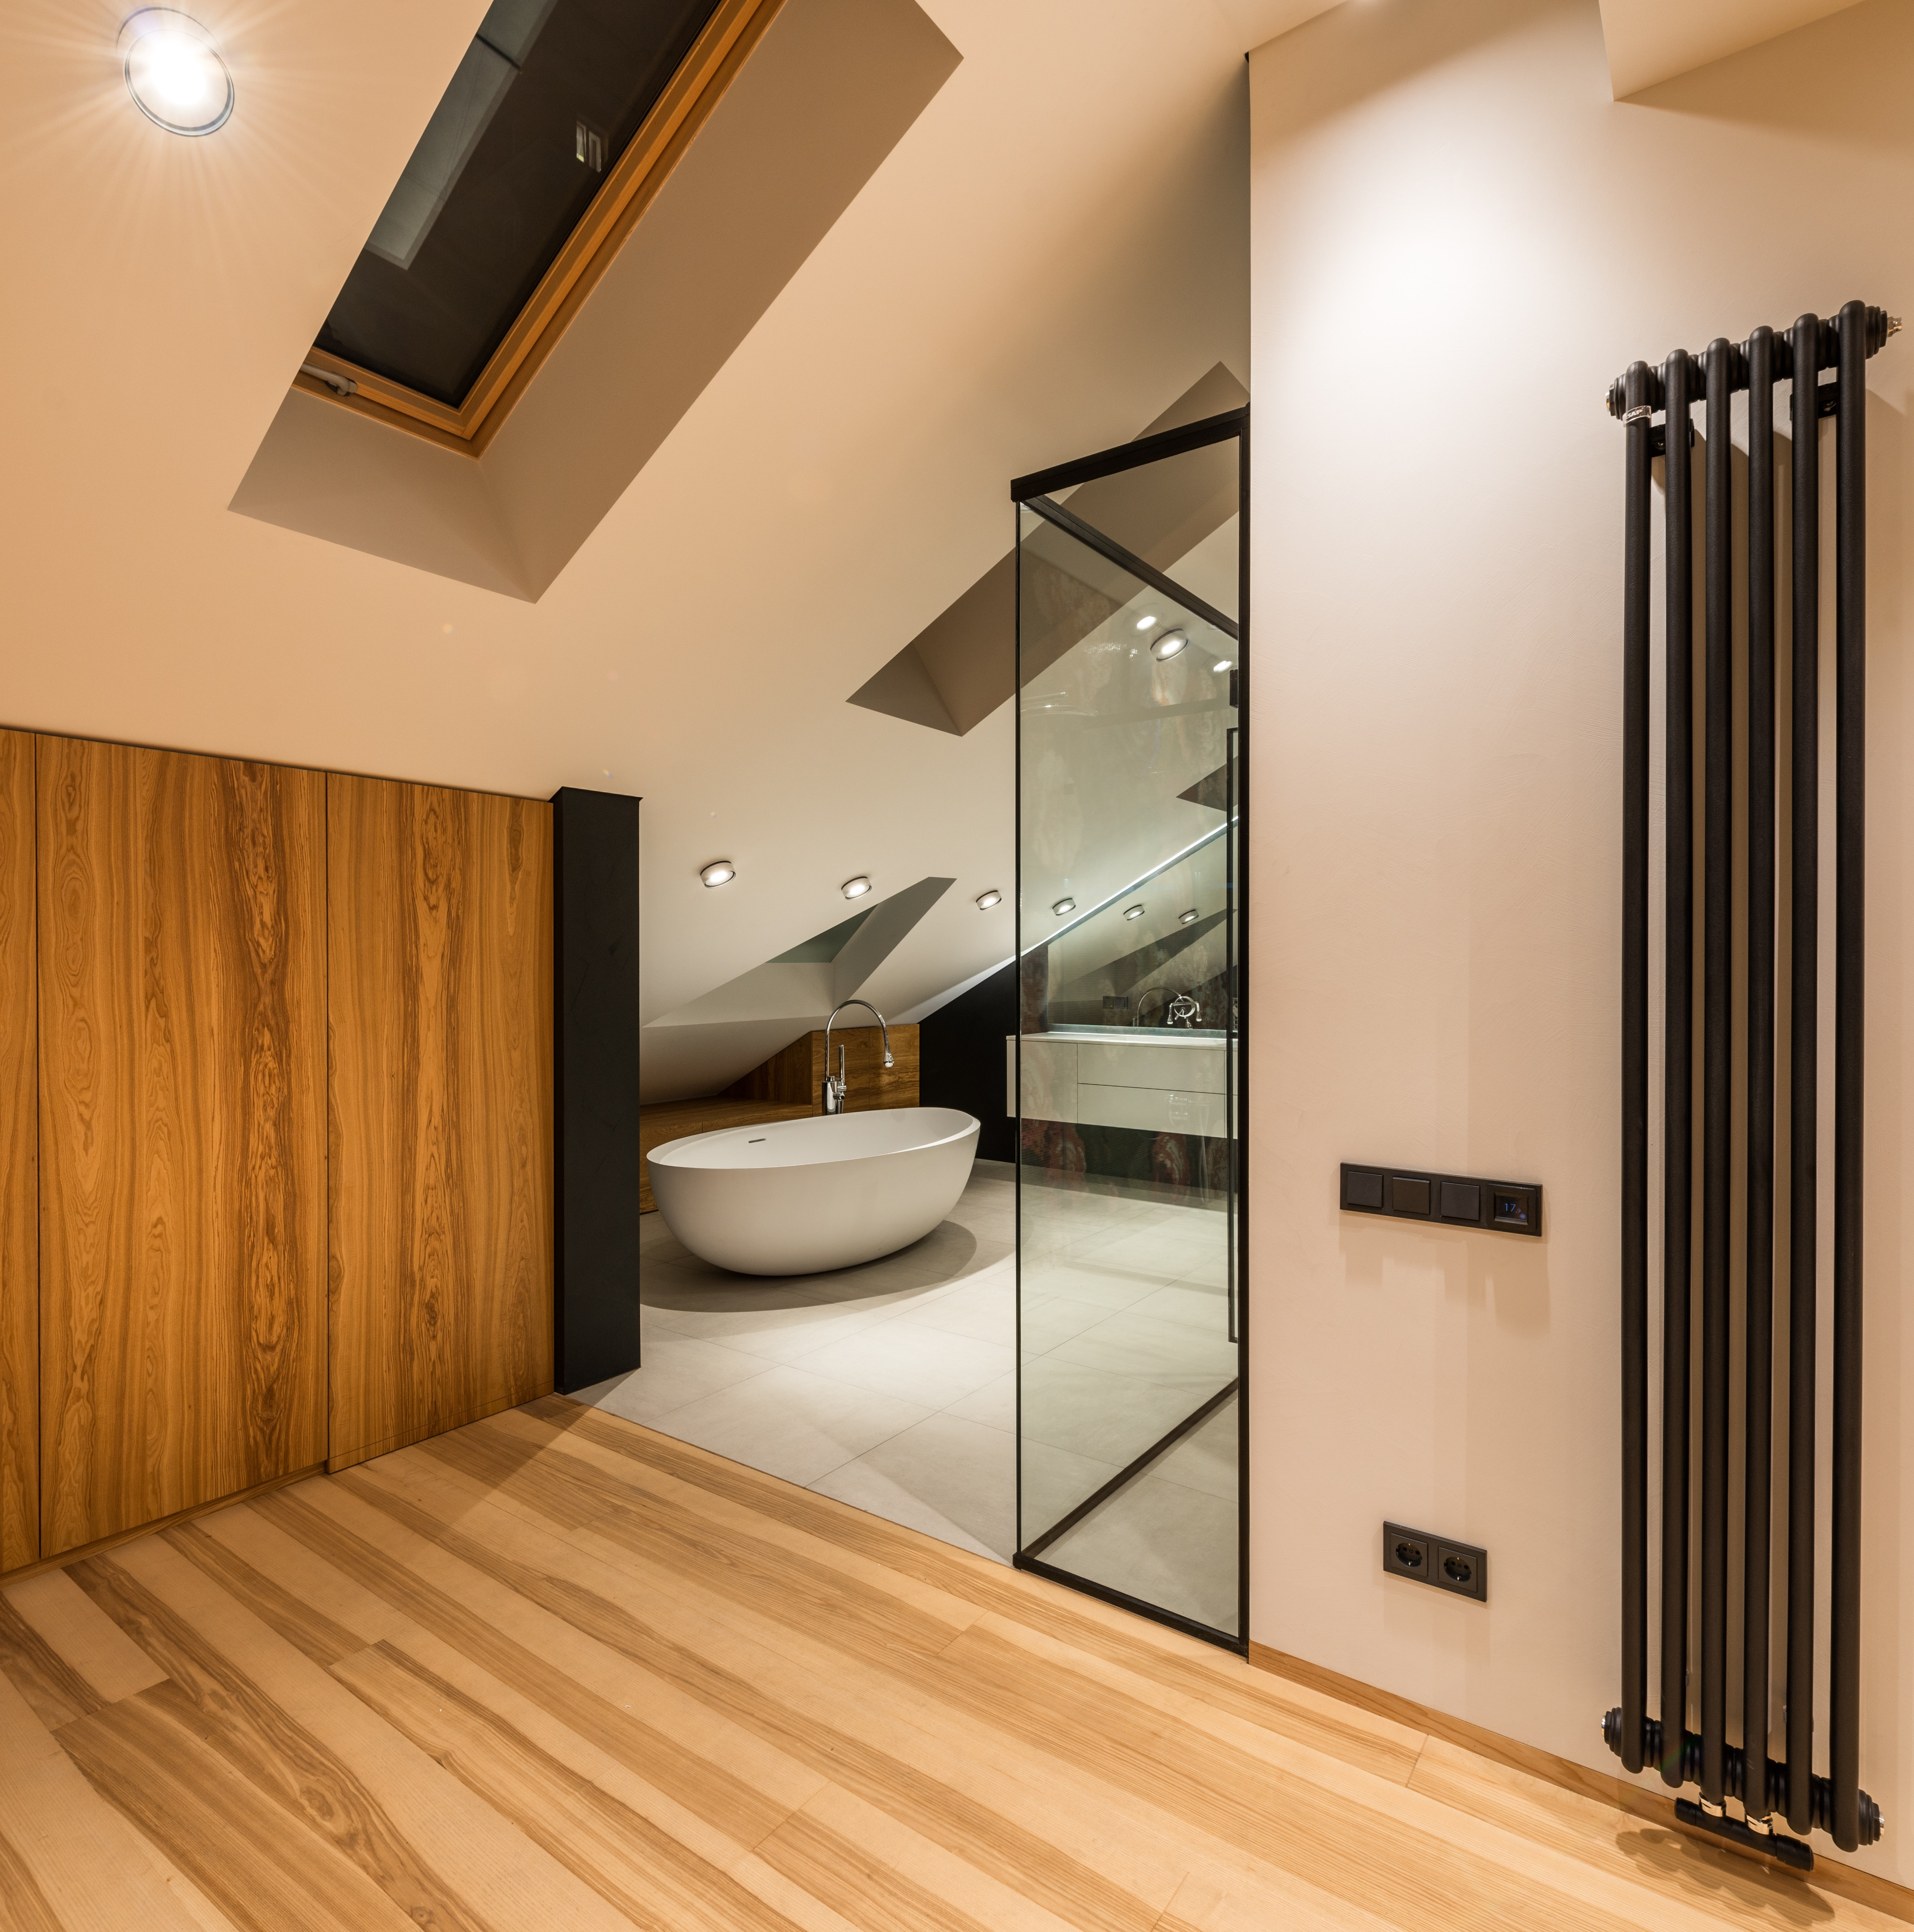 Creating Space in Attics and Basements